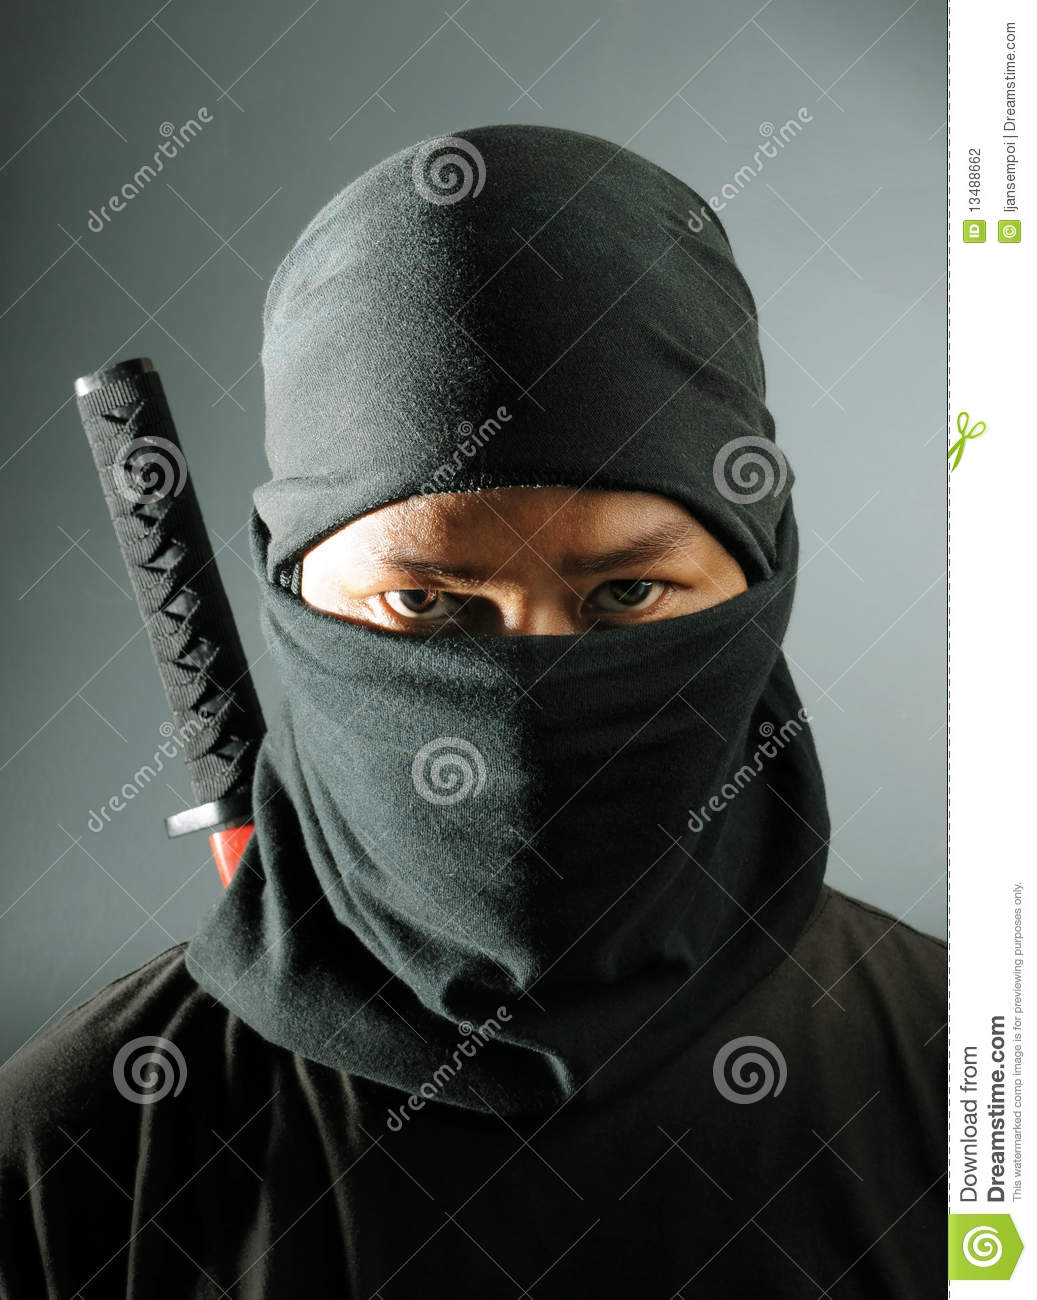 Assassin de Ninja